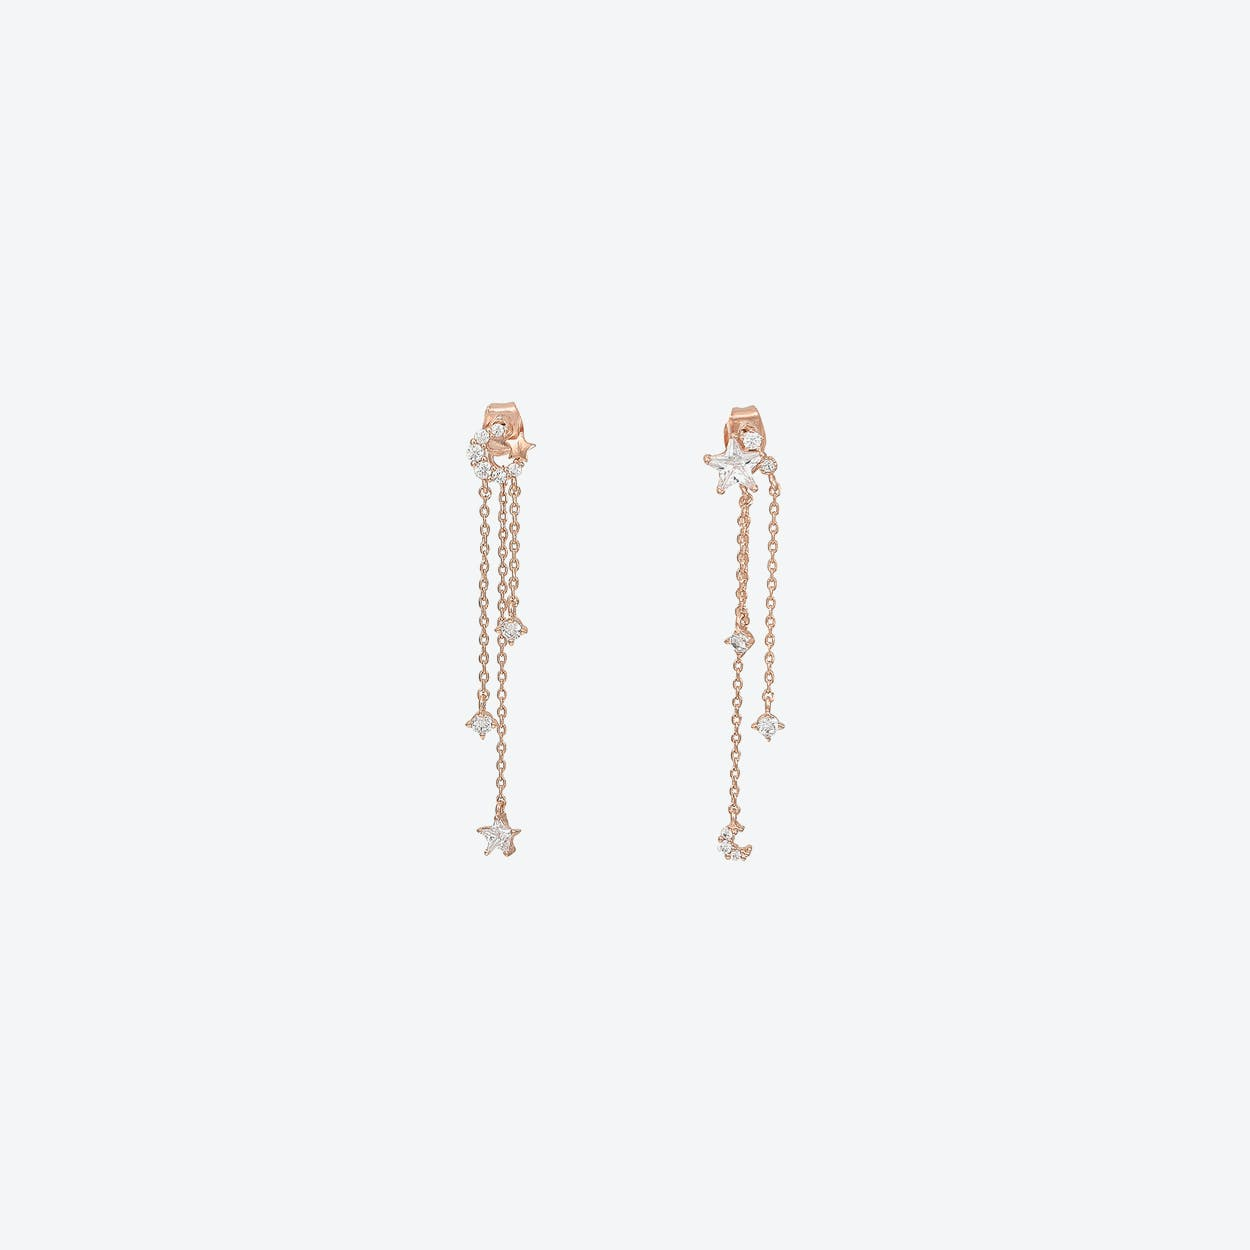 Celestial Asymmetric Long Chain Earrings In Rose Gold